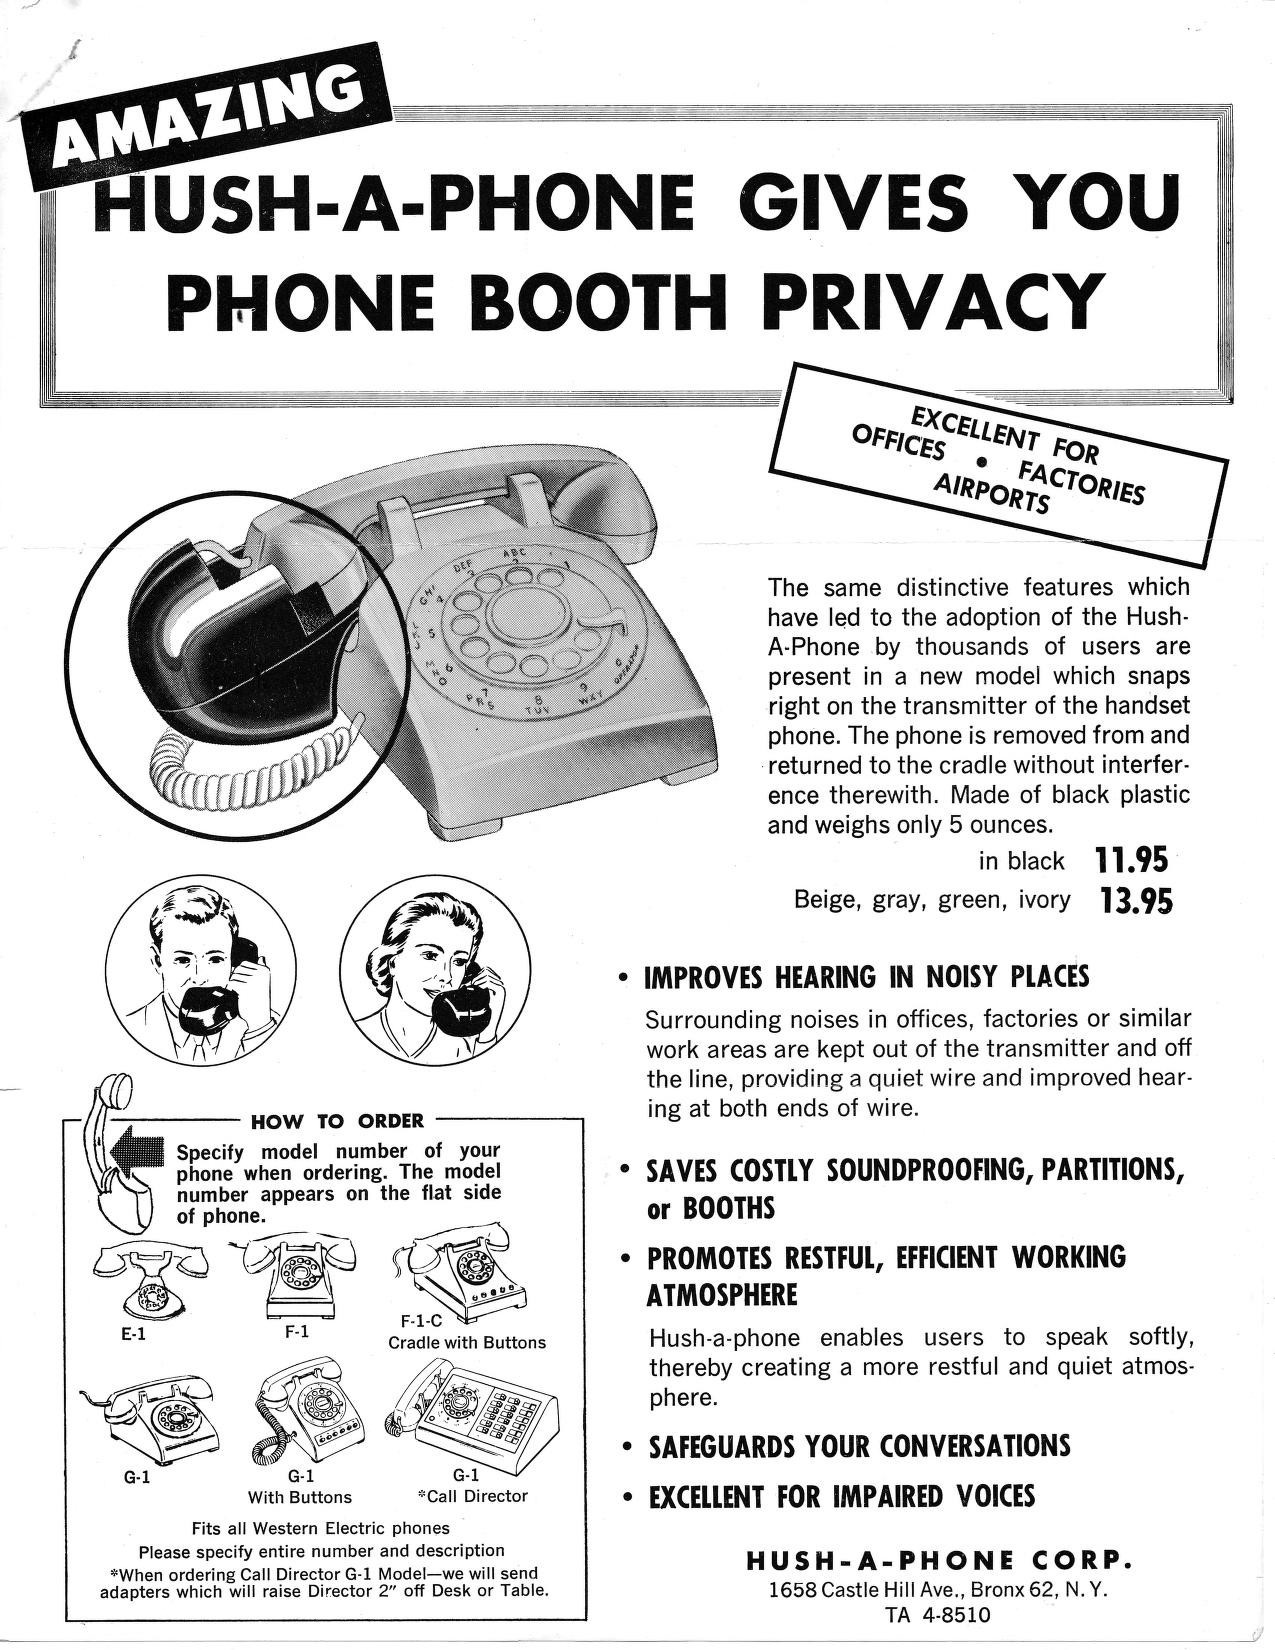 Midcenutry advertisement for the Hush-A-Phone.